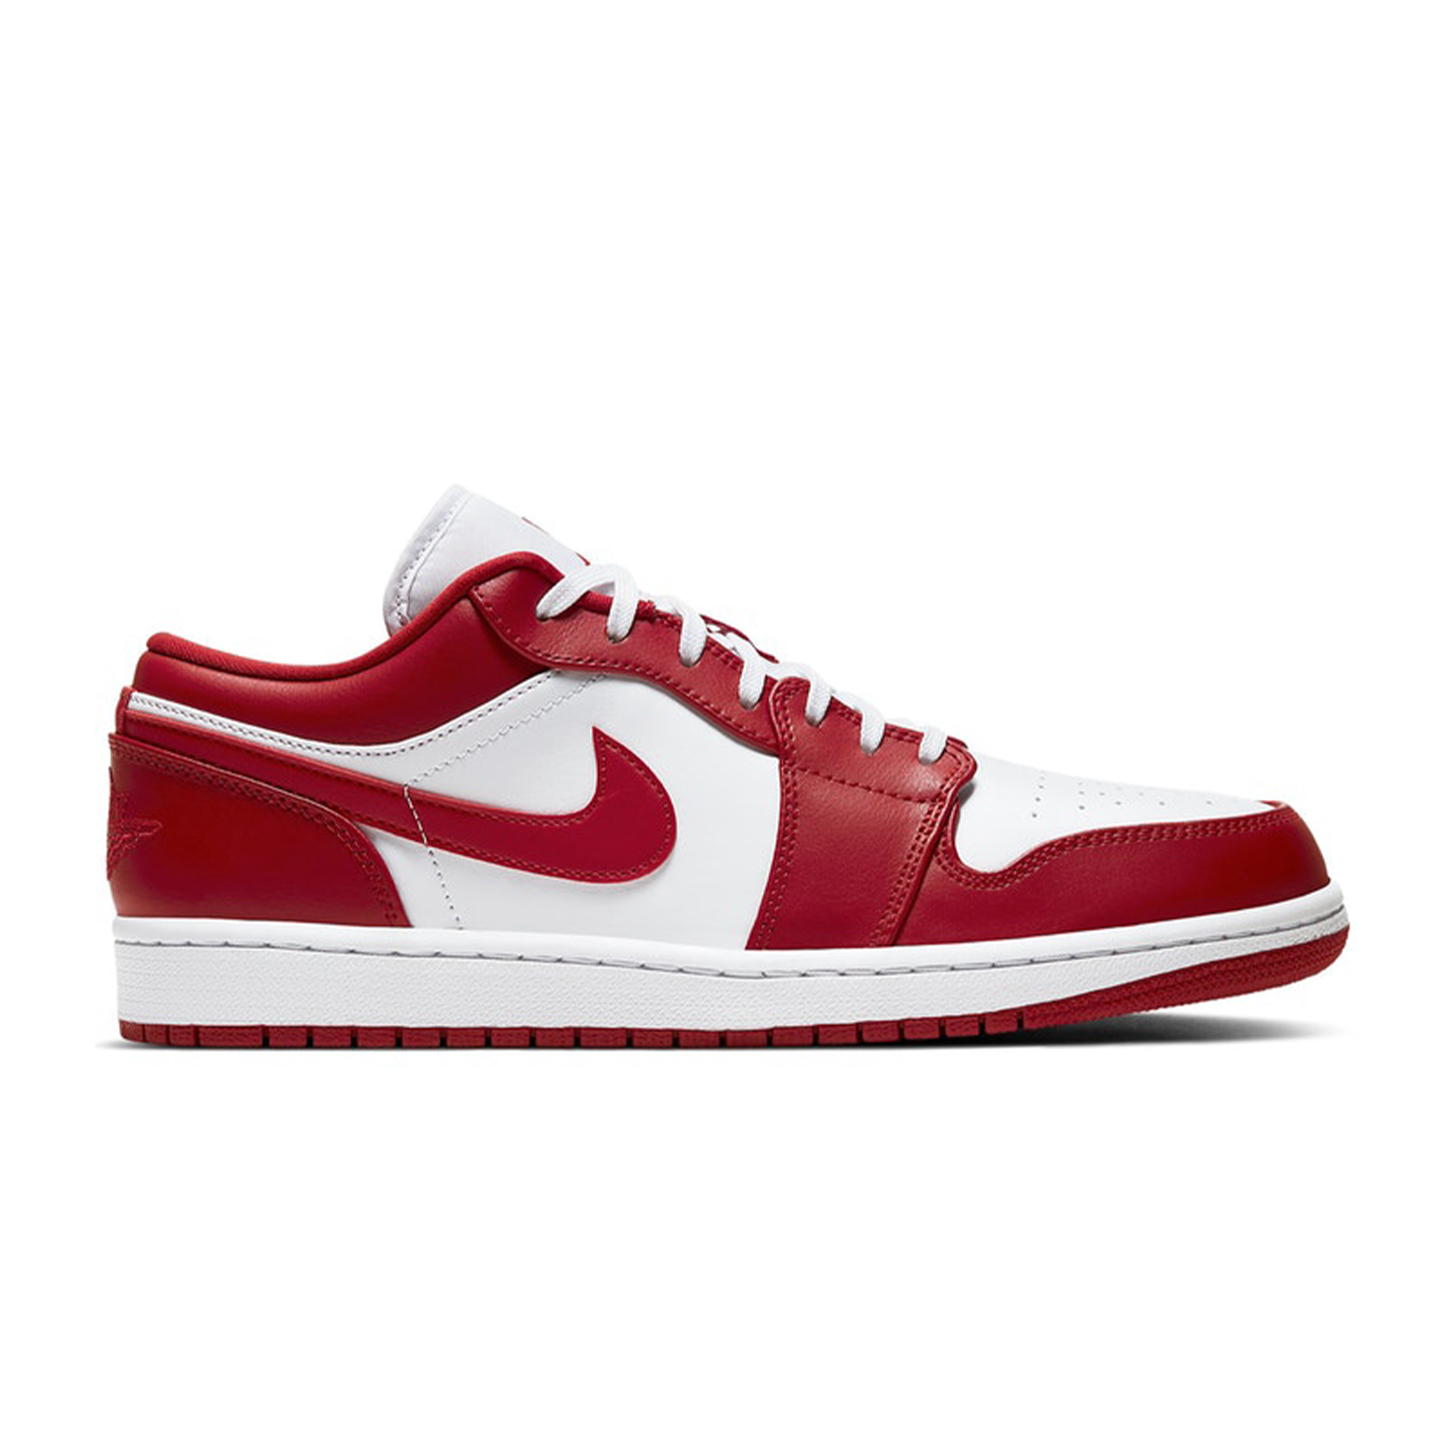 Jordan 1 Low Gym Red White